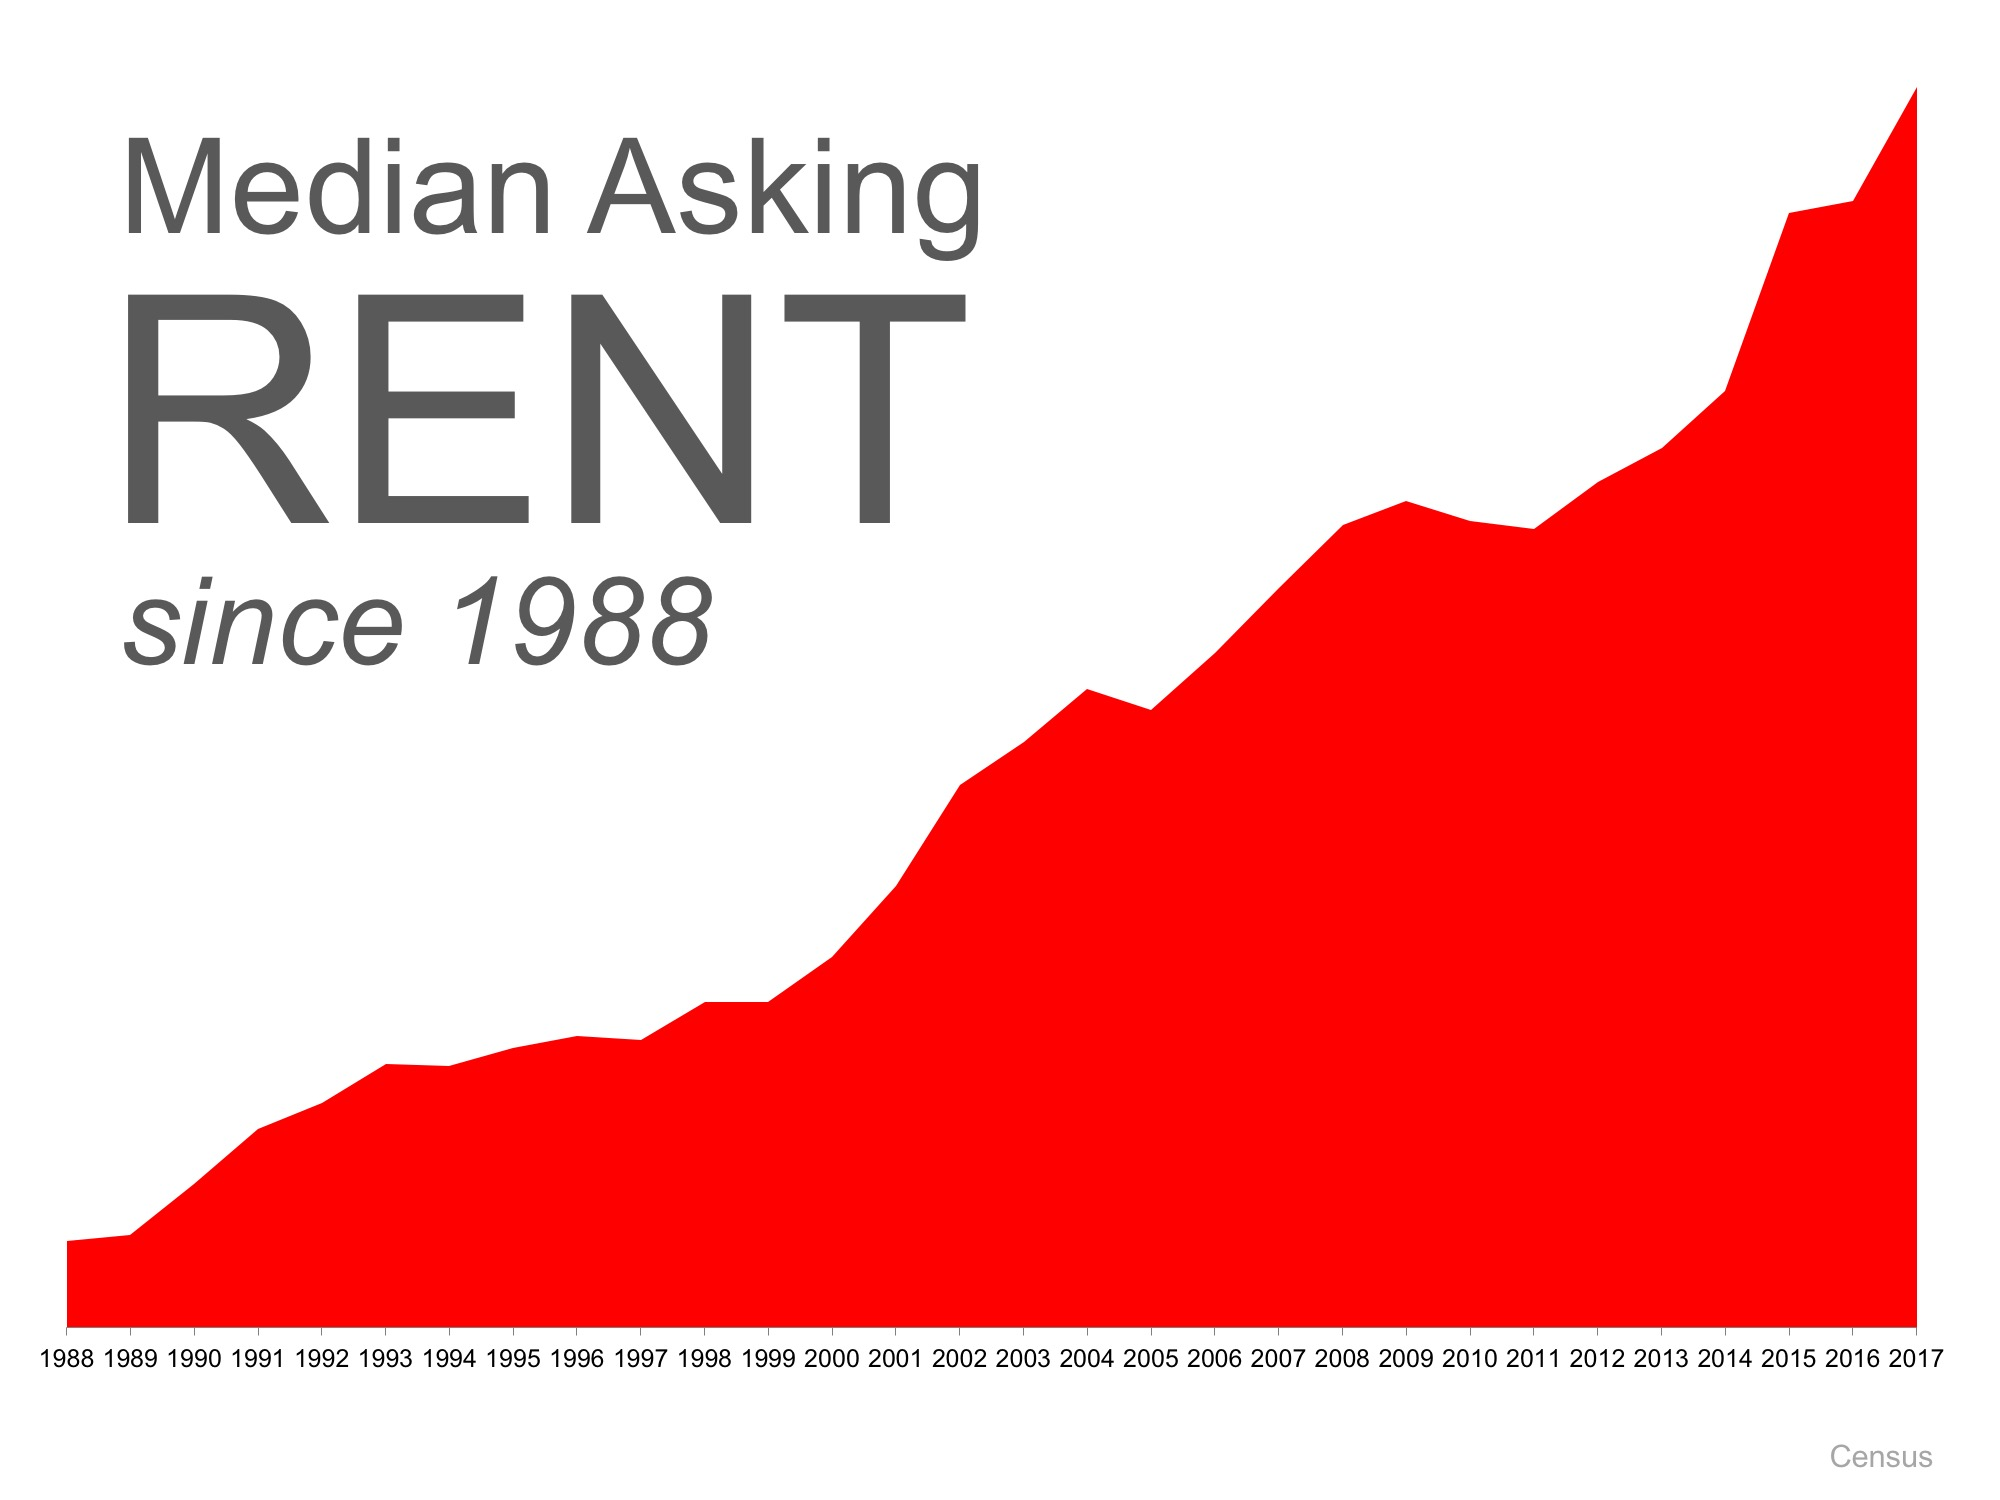 Median-Asking-Rent